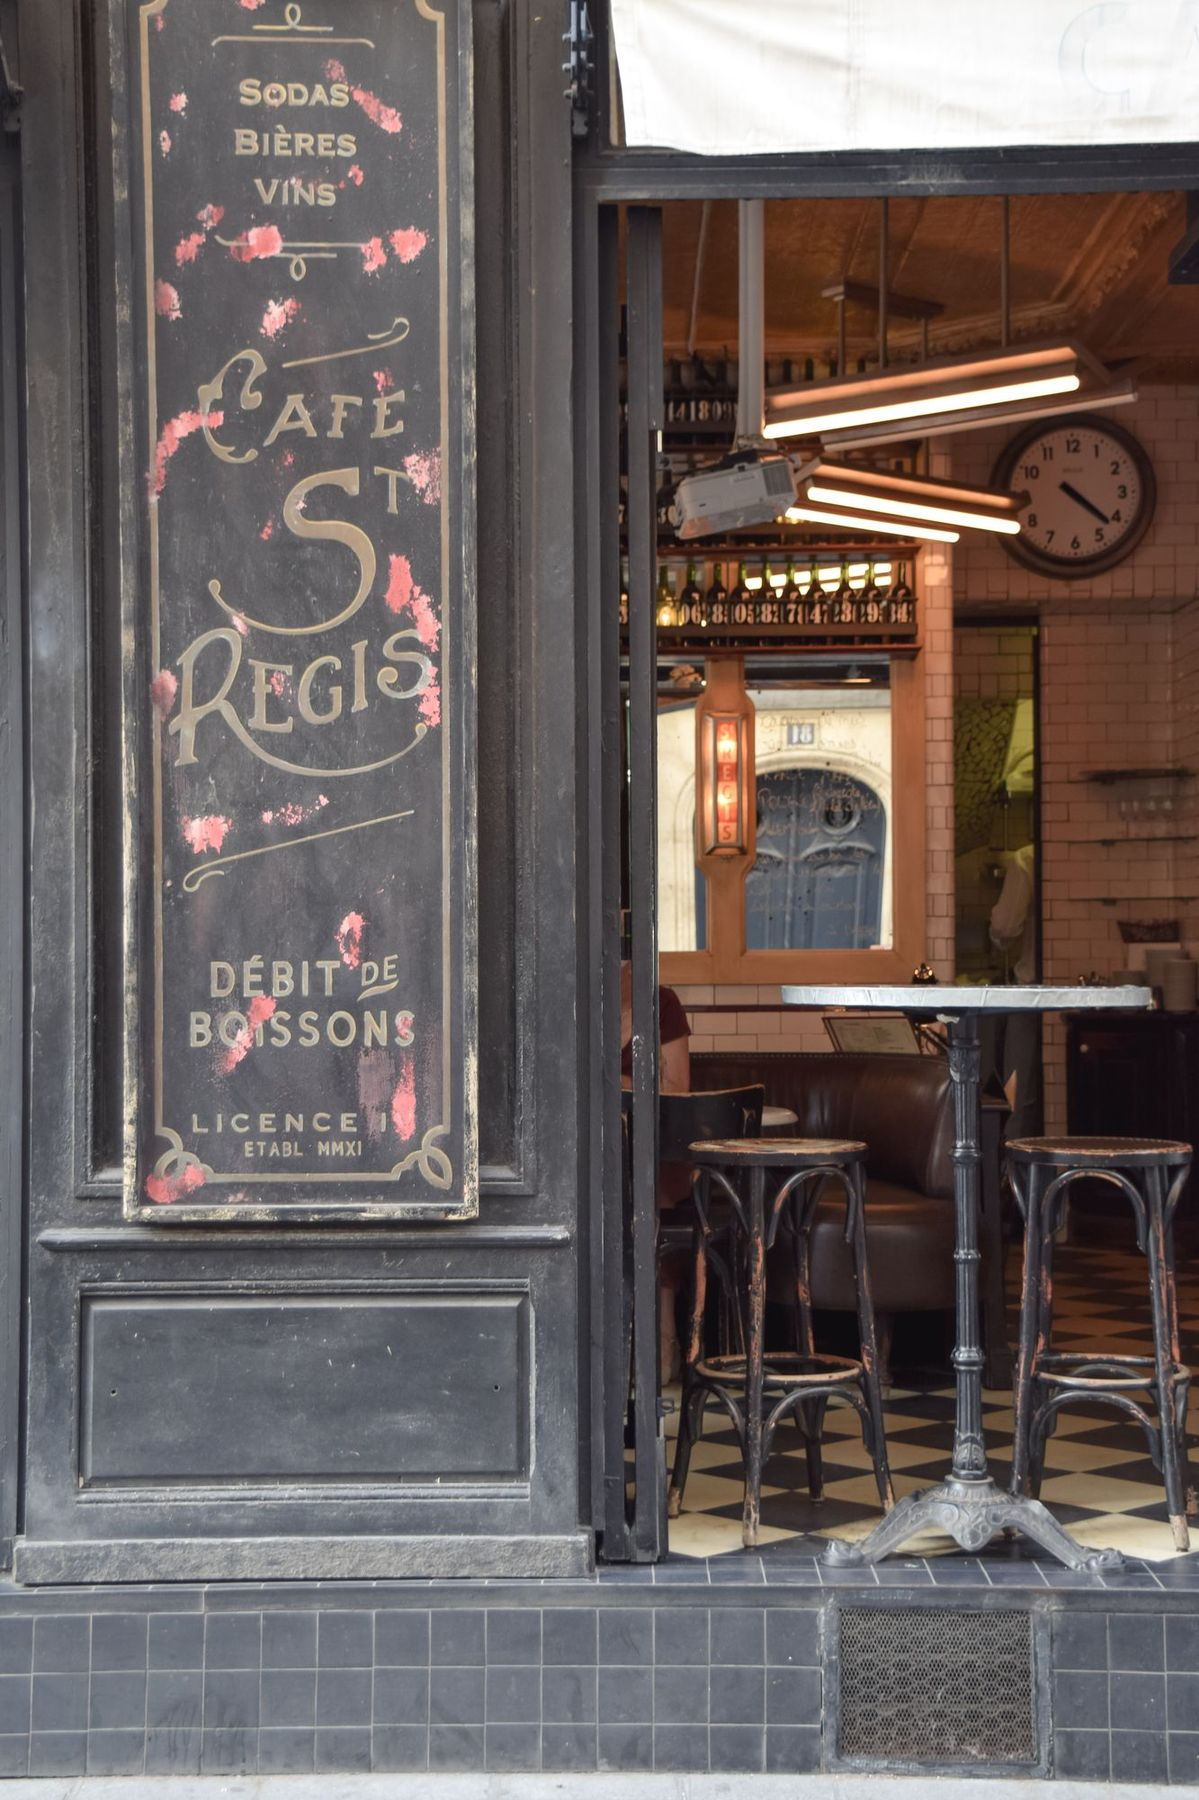 Café Saint-Régis, Île Saint-Louis, Paris